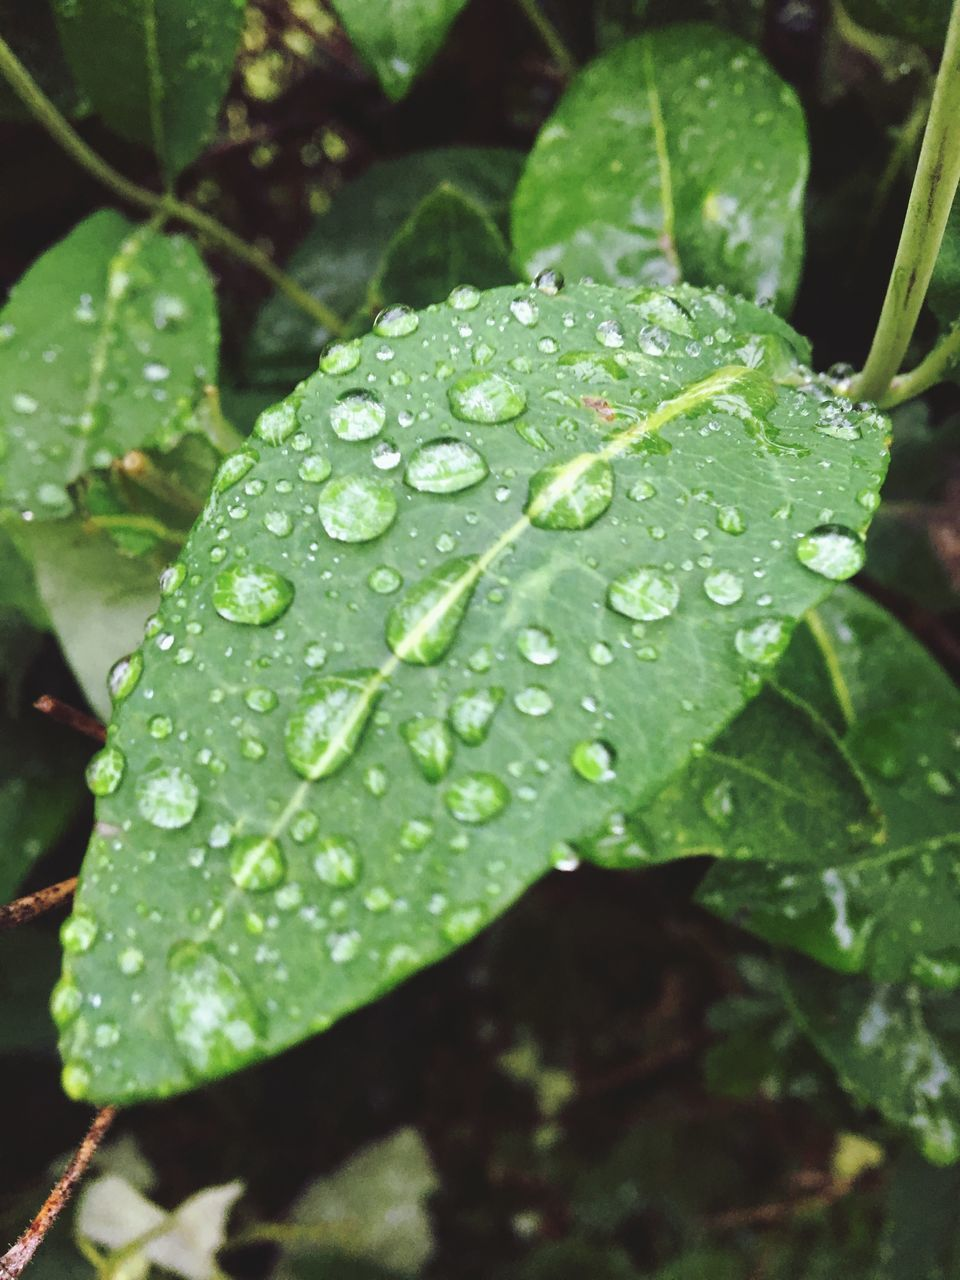 drop, leaf, green color, water, wet, raindrop, close-up, growth, nature, no people, freshness, plant, day, fragility, outdoors, beauty in nature, periwinkle